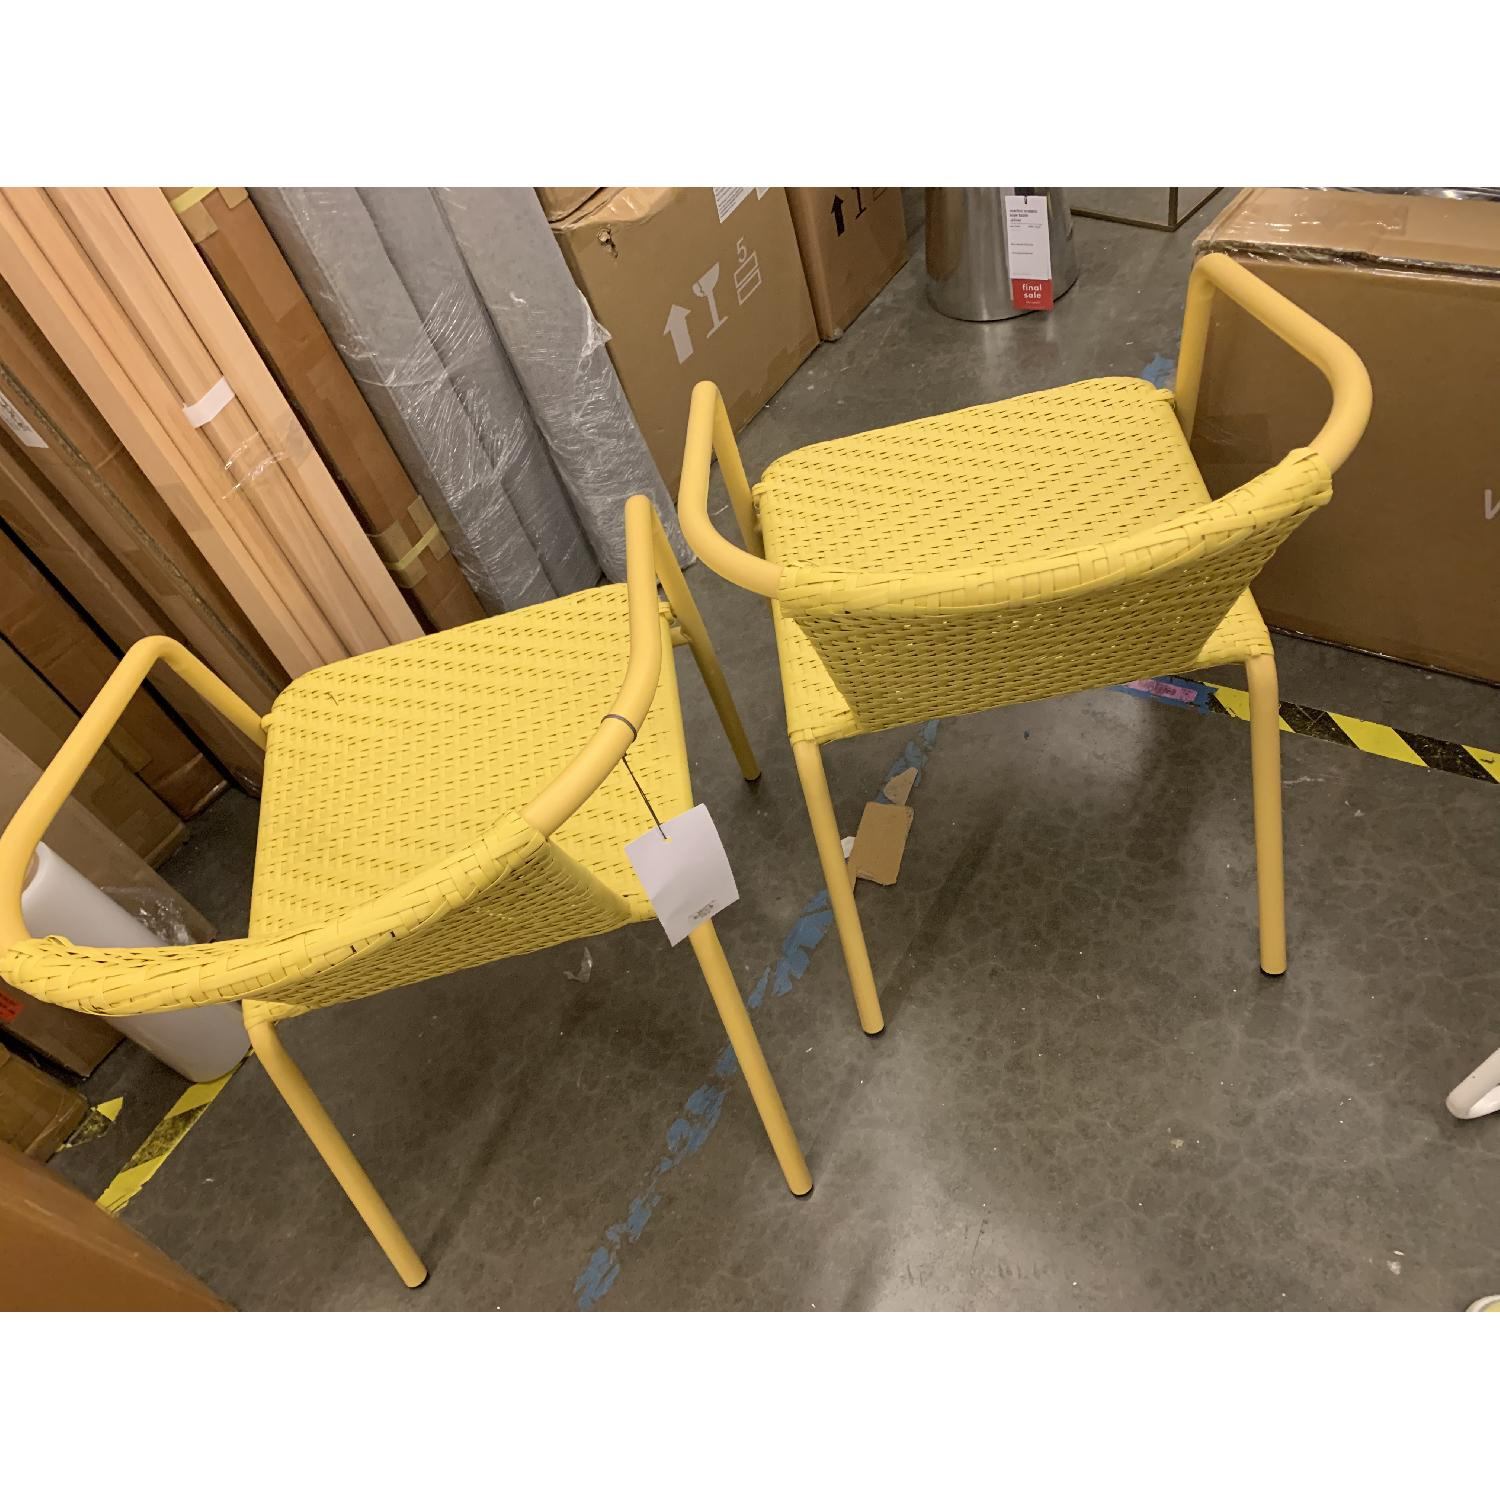 West Elm Woven Outdoor Stacking Chairs - image-1